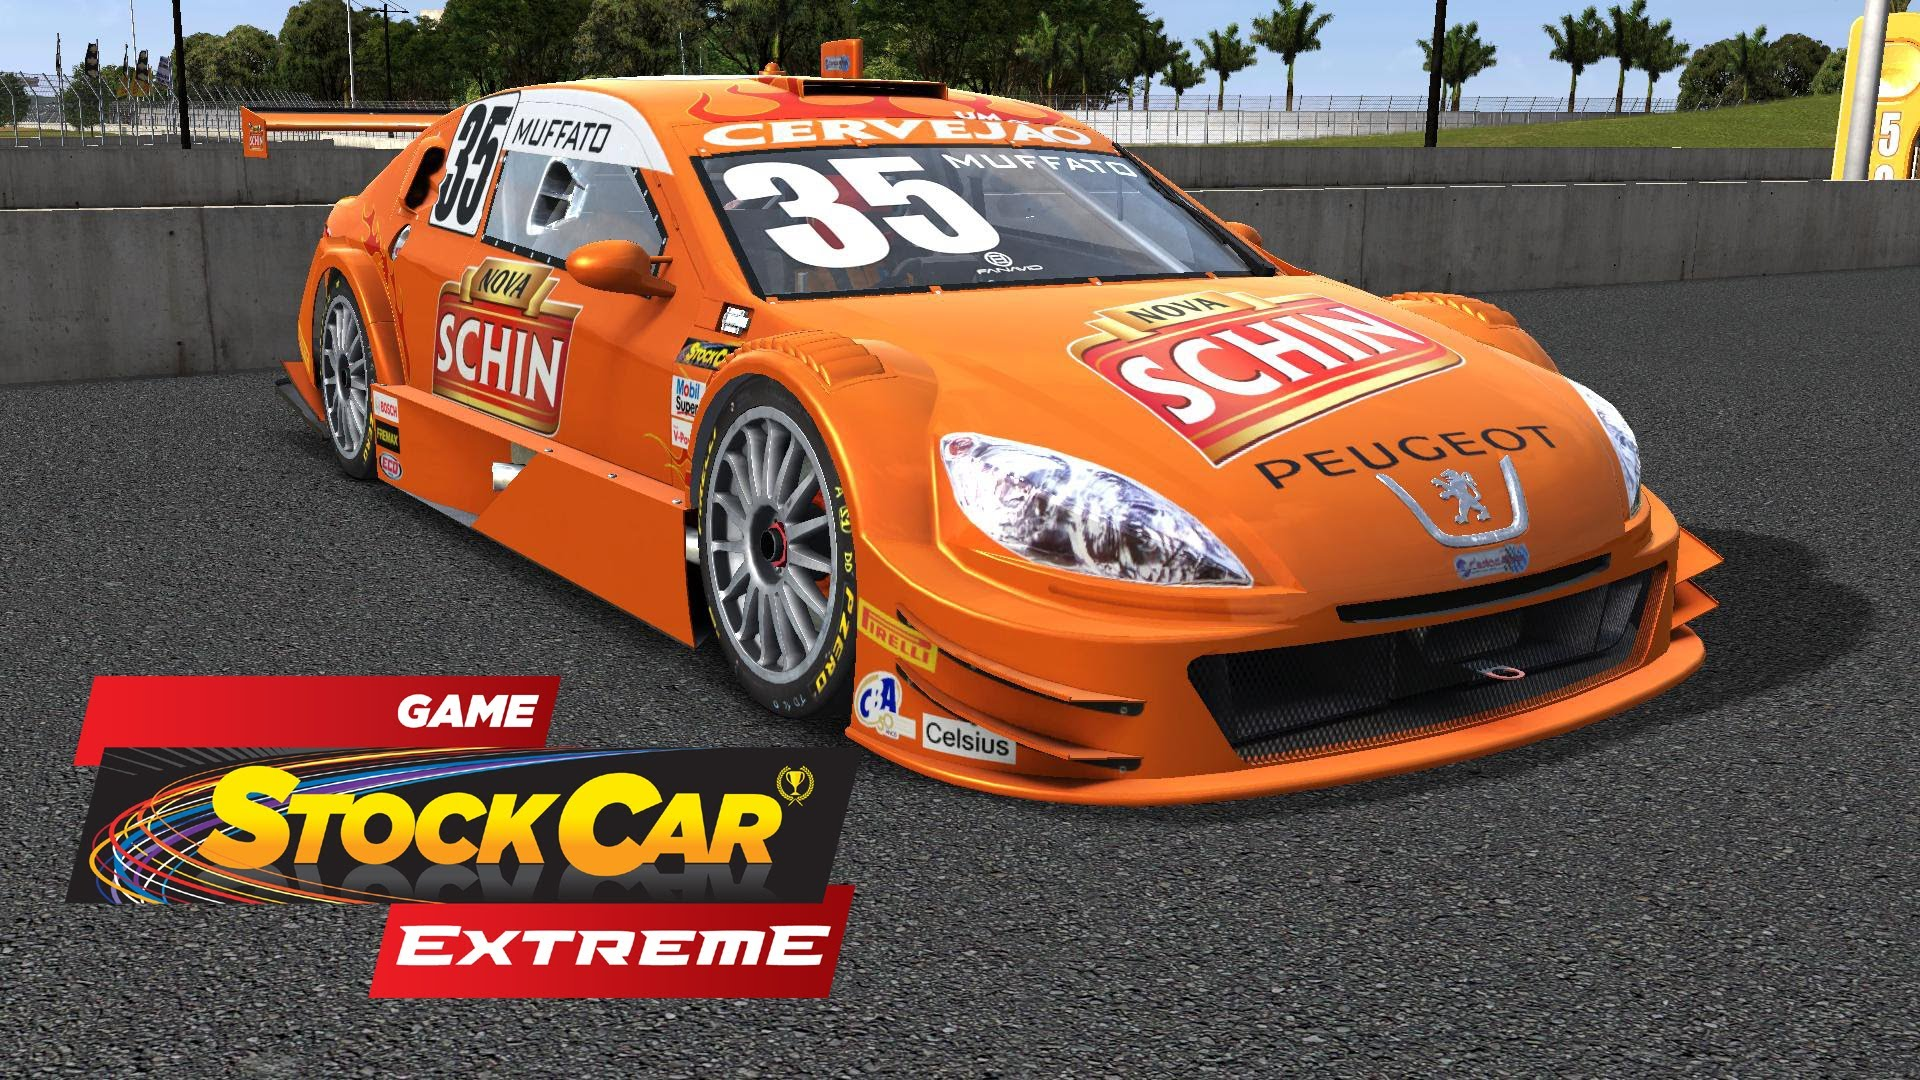 #6 GAME STOCK CAR EXTREME